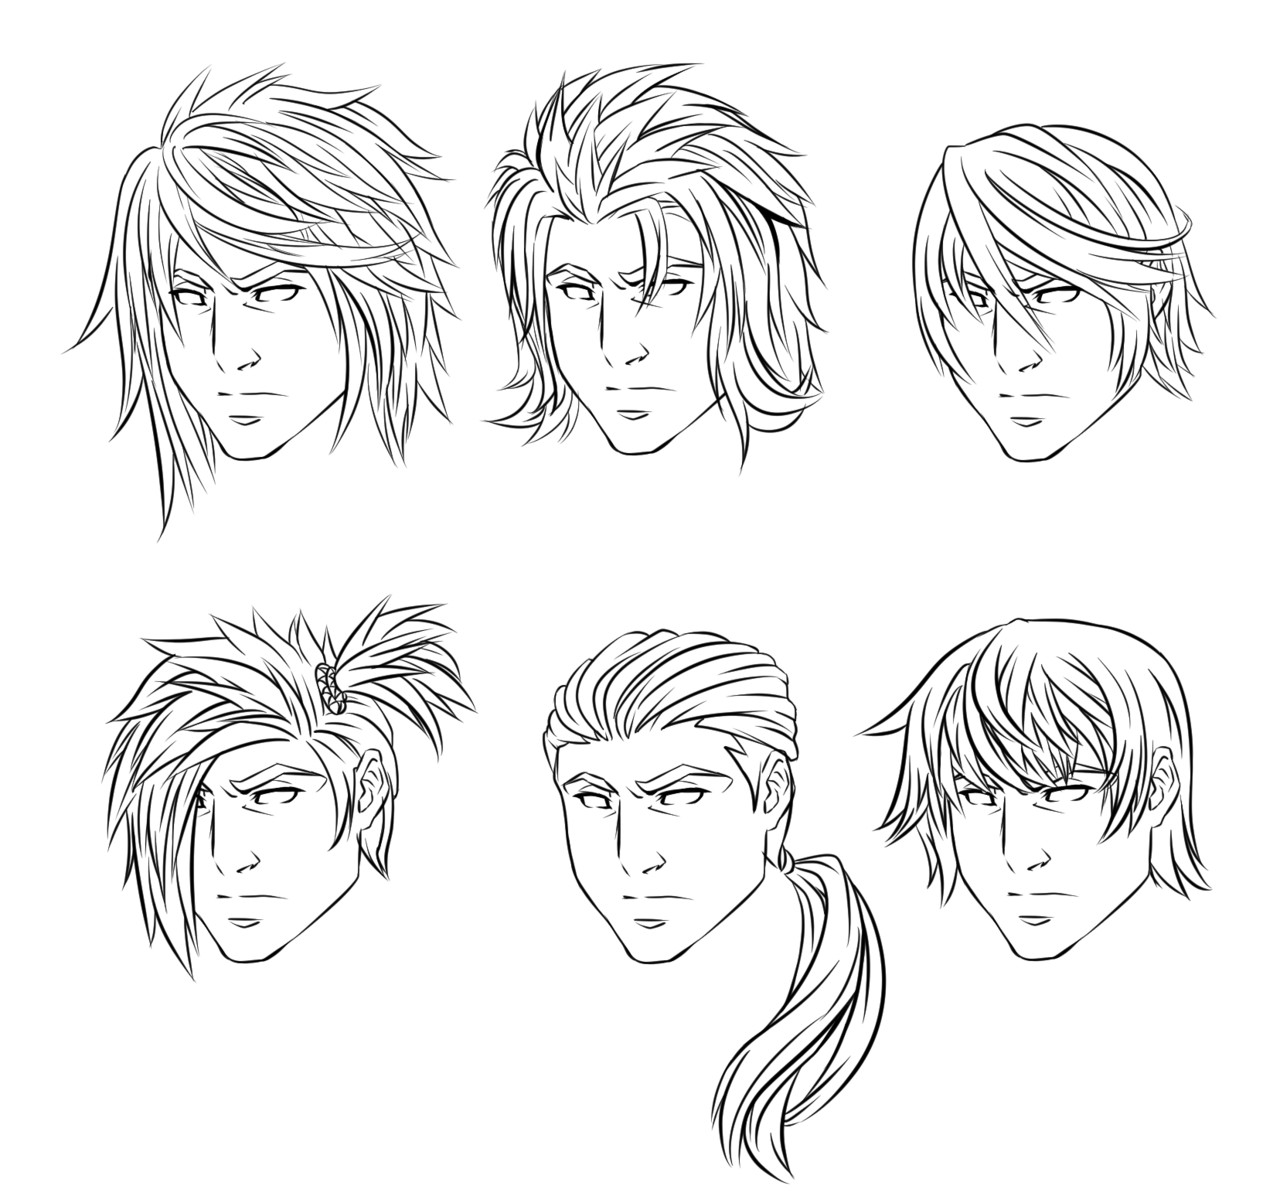 Manga Male Hairstyles  Anime Male Hairstyles by CrimsonCypher on DeviantArt